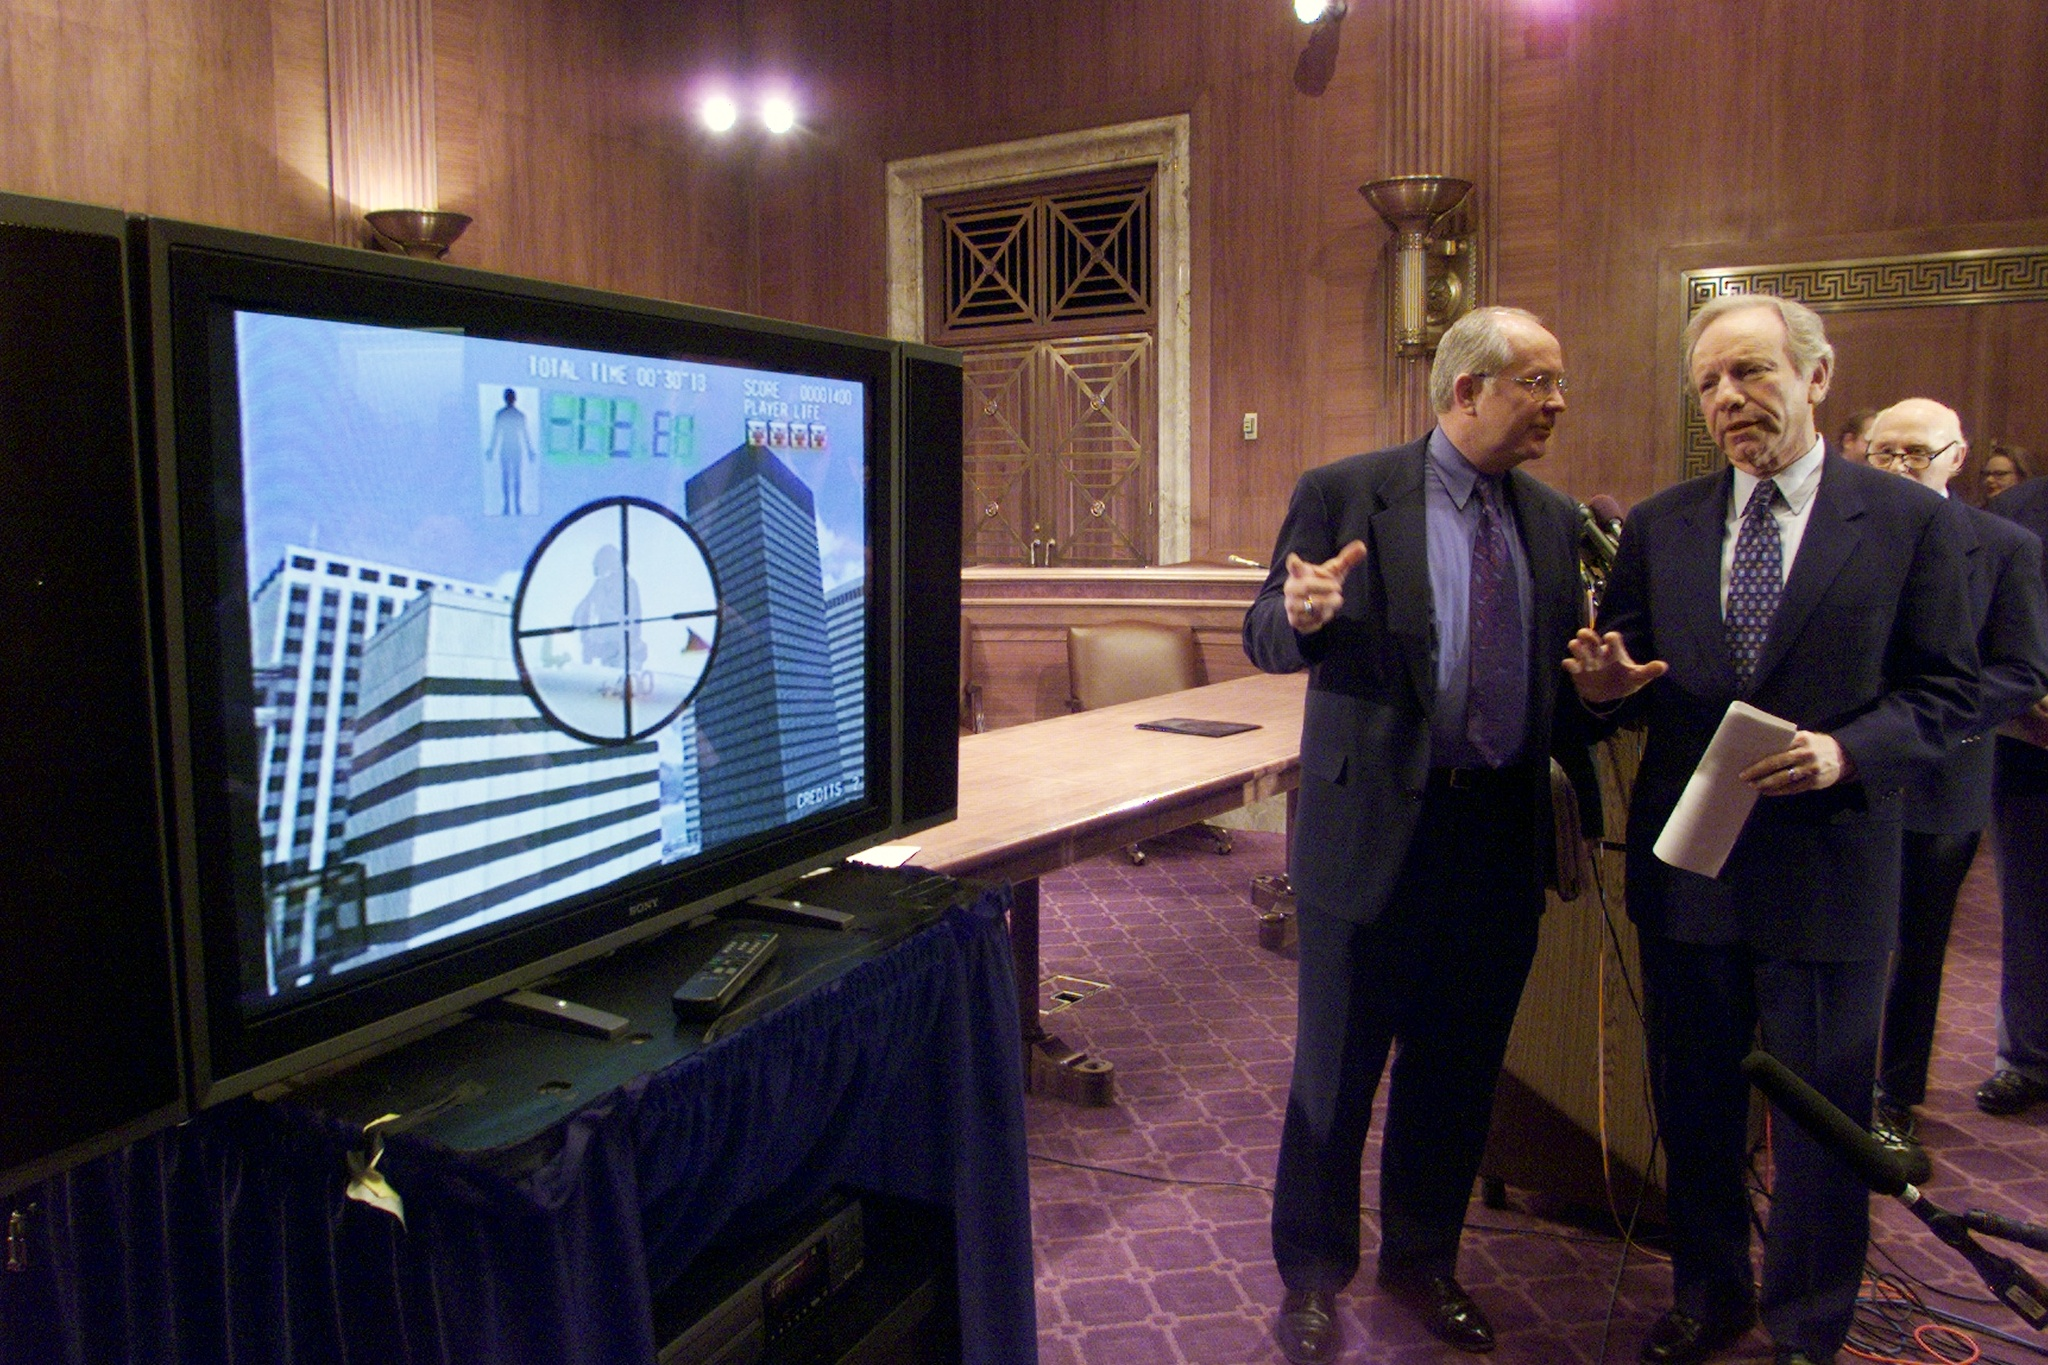 Sen. Joseph Lieberman (D-Conn.) watches videos with David Wa